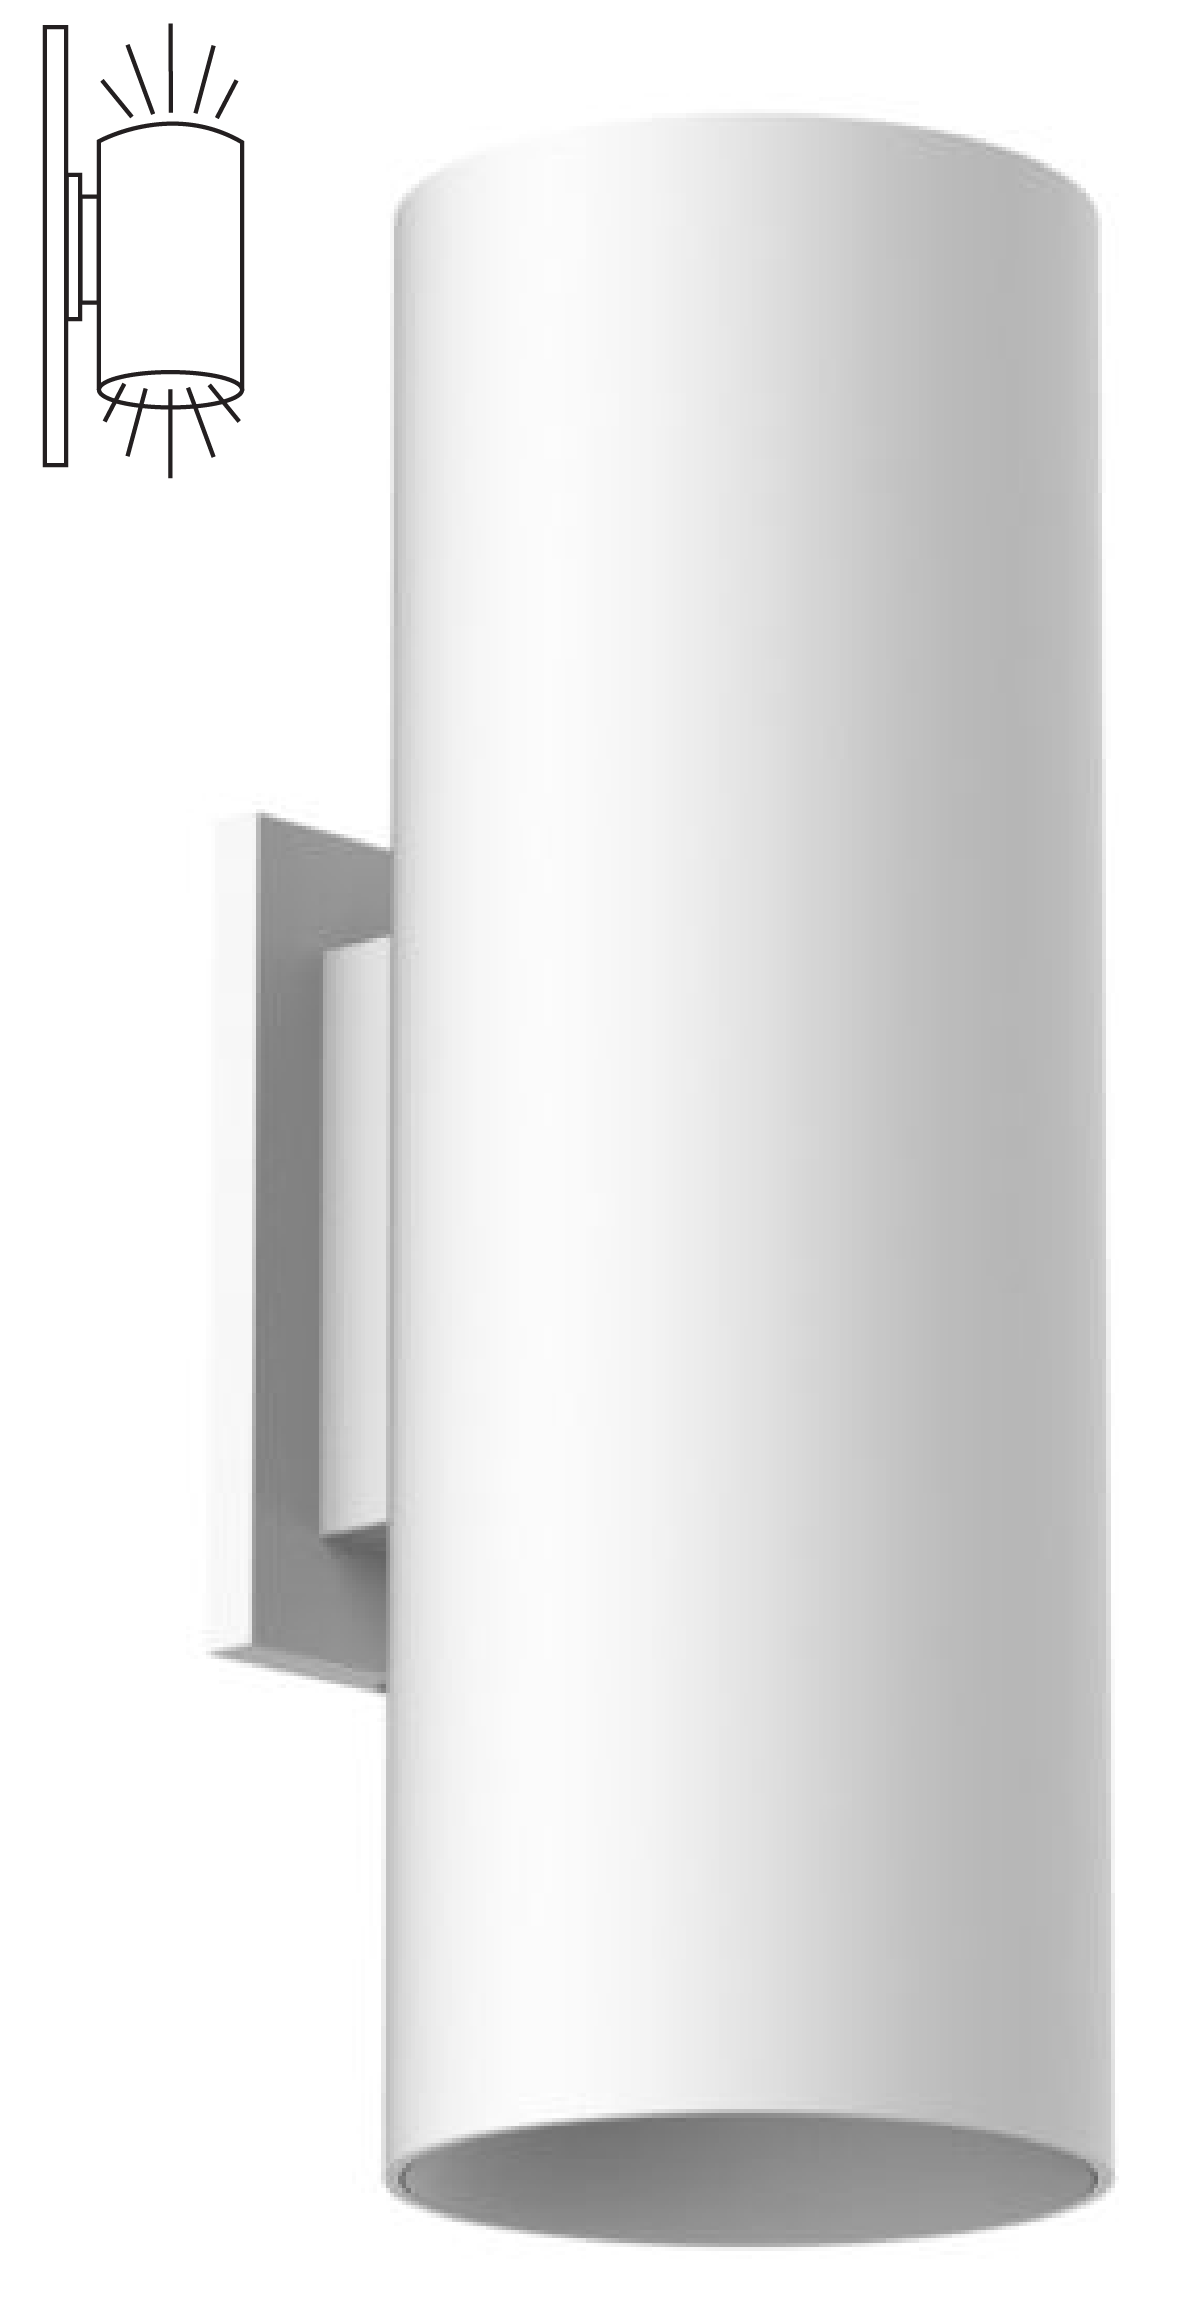 Indirect wall lighting Diy Ceiling Alcon Lighting 11239w Cilindro Iii Architectural Led Large Modern